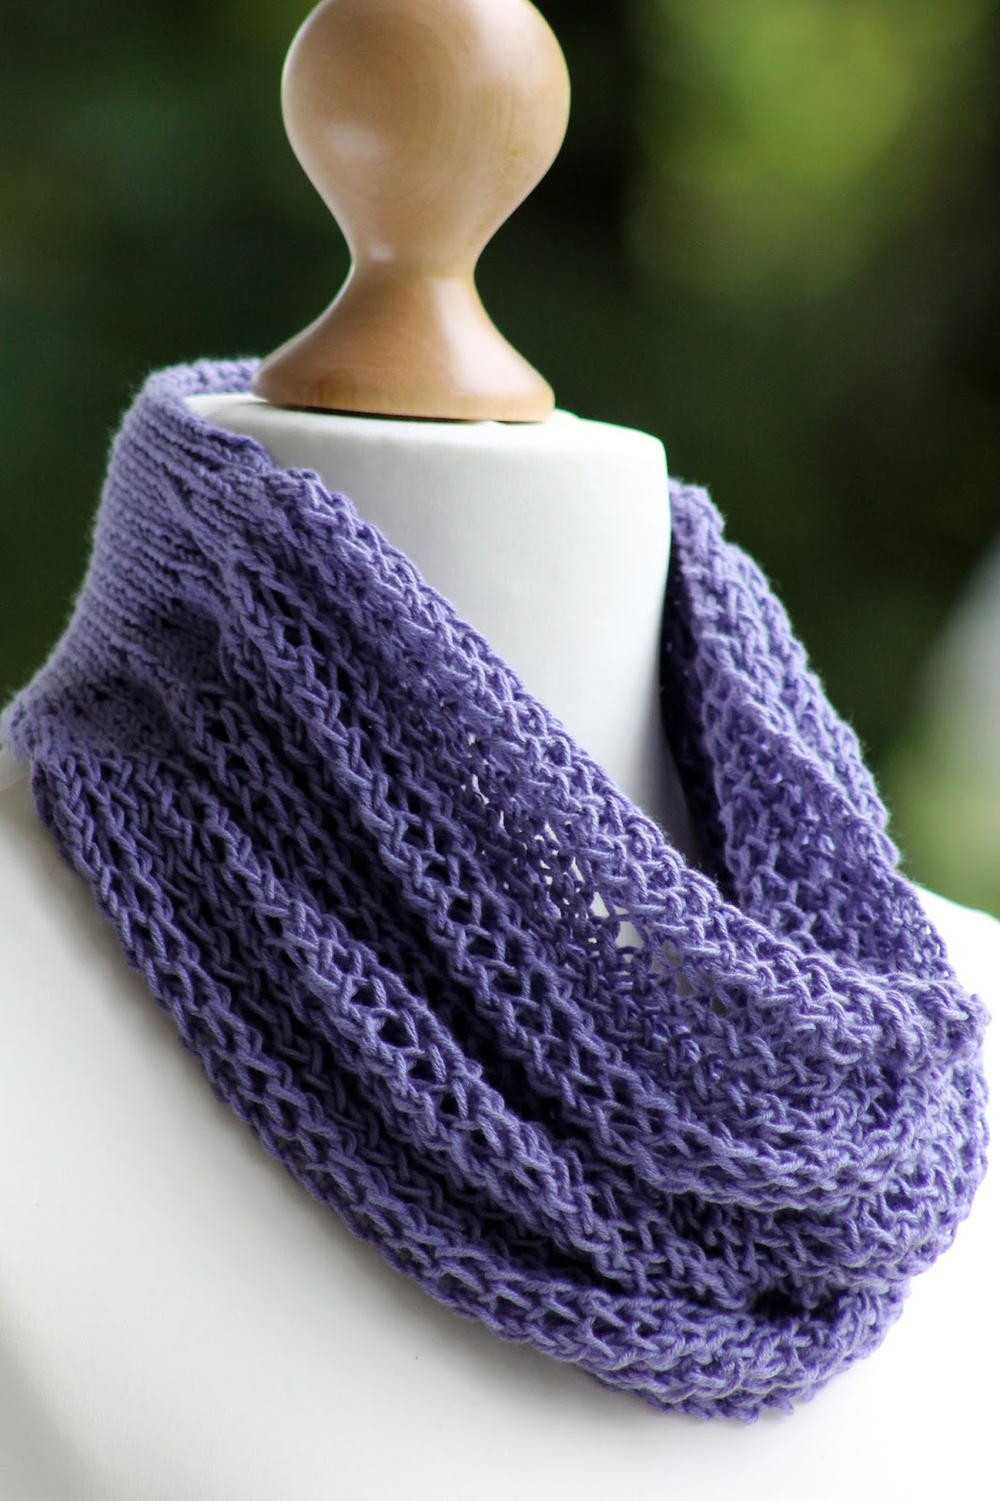 Unique Gorgeous Grape Knit Cowl Cowl Scarf Of Innovative 48 Photos Cowl Scarf